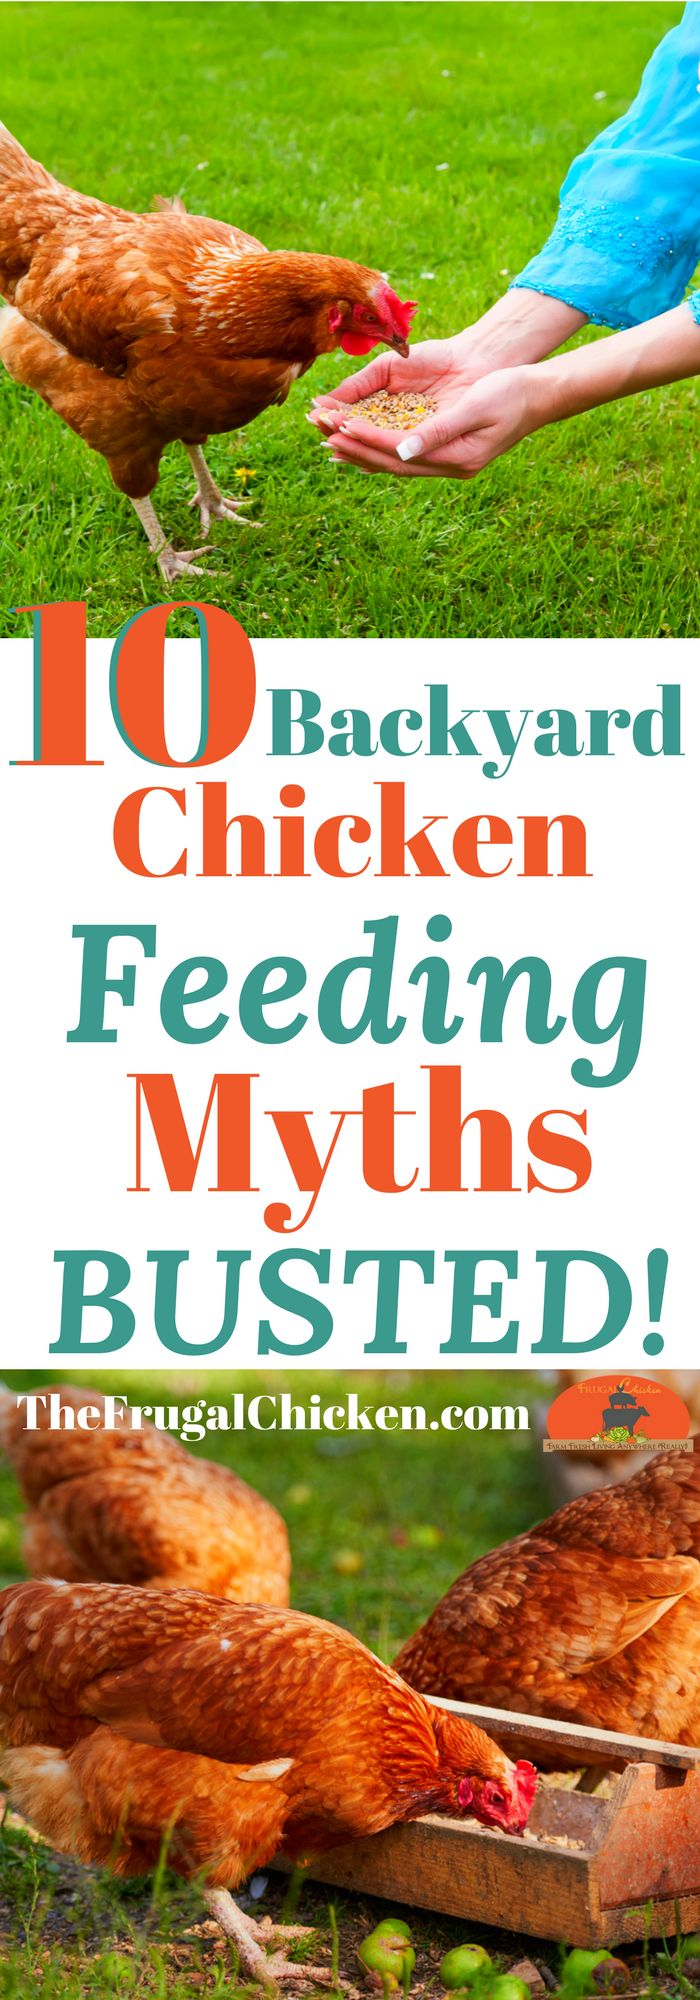 Heard you can't feed eggs to backyard chickens? What about tomatoes? Here's the top 10 chicken feeding myths - BUSTED!